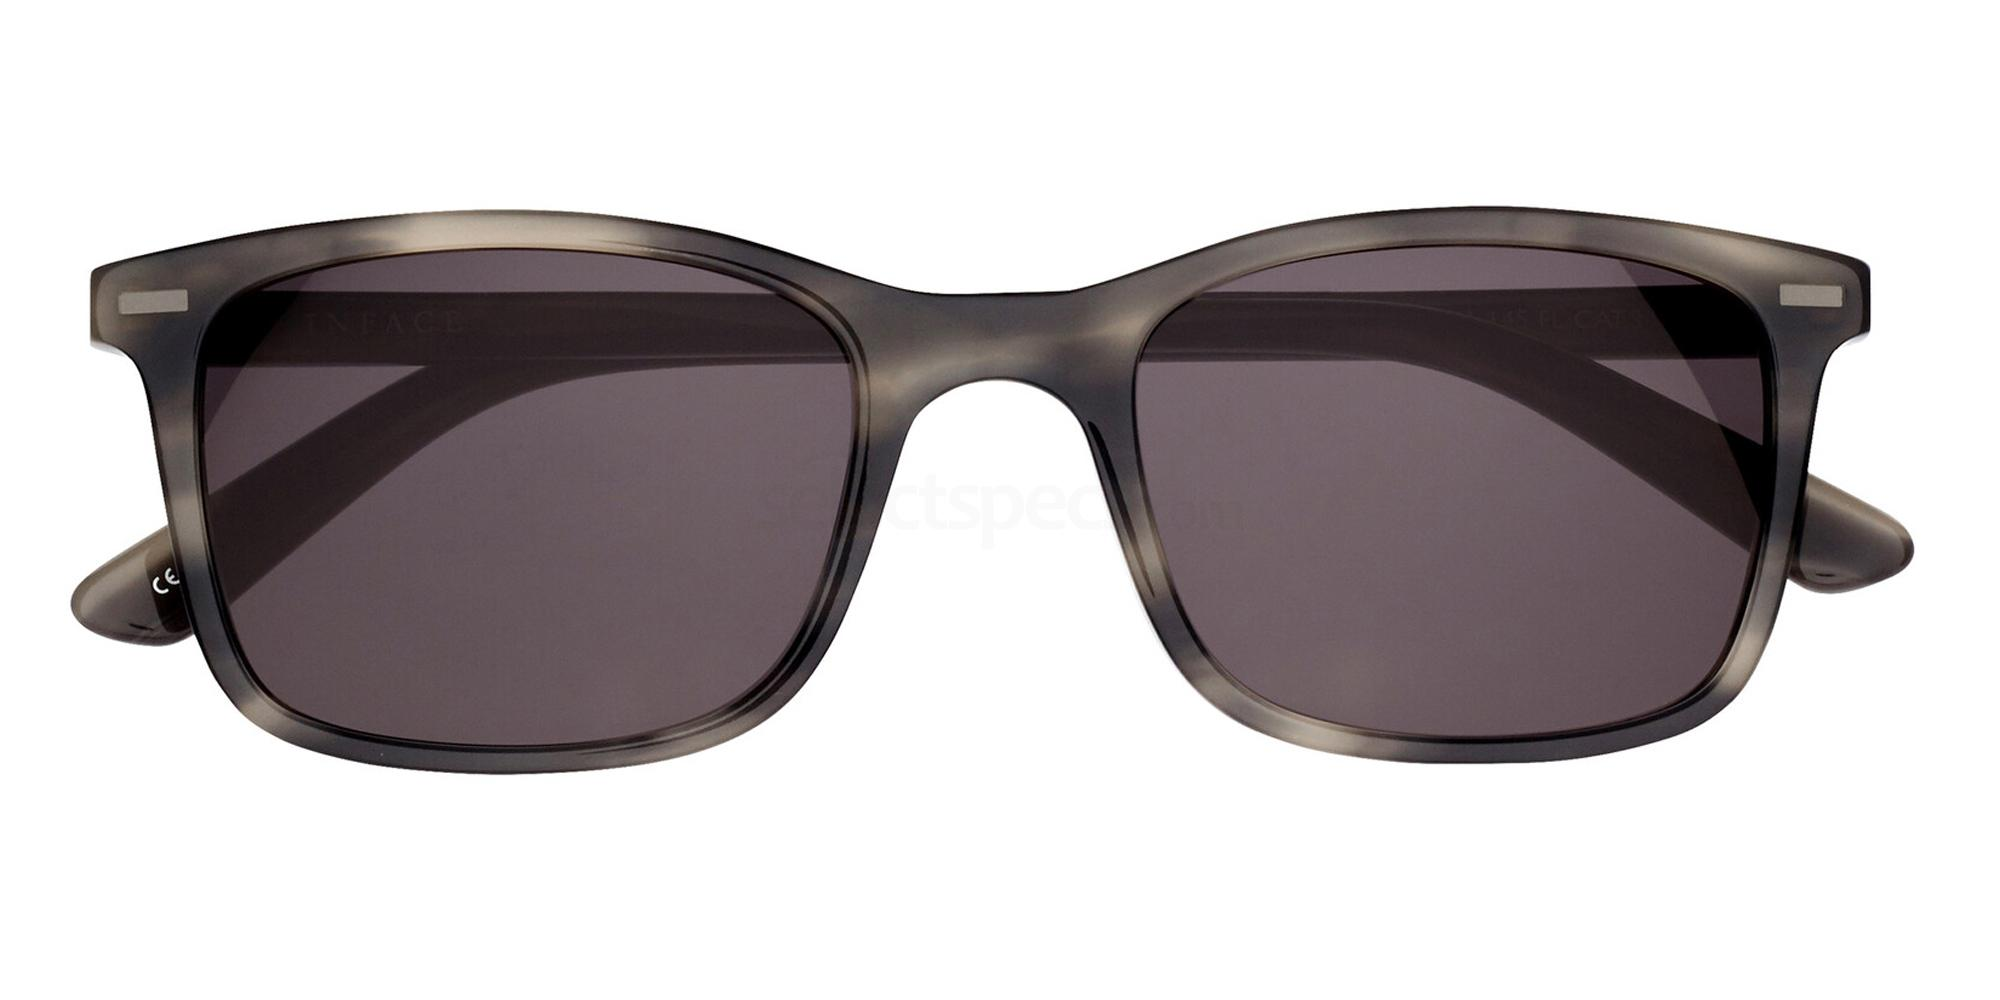 6524 IF9794 Sunglasses, Inface in Love